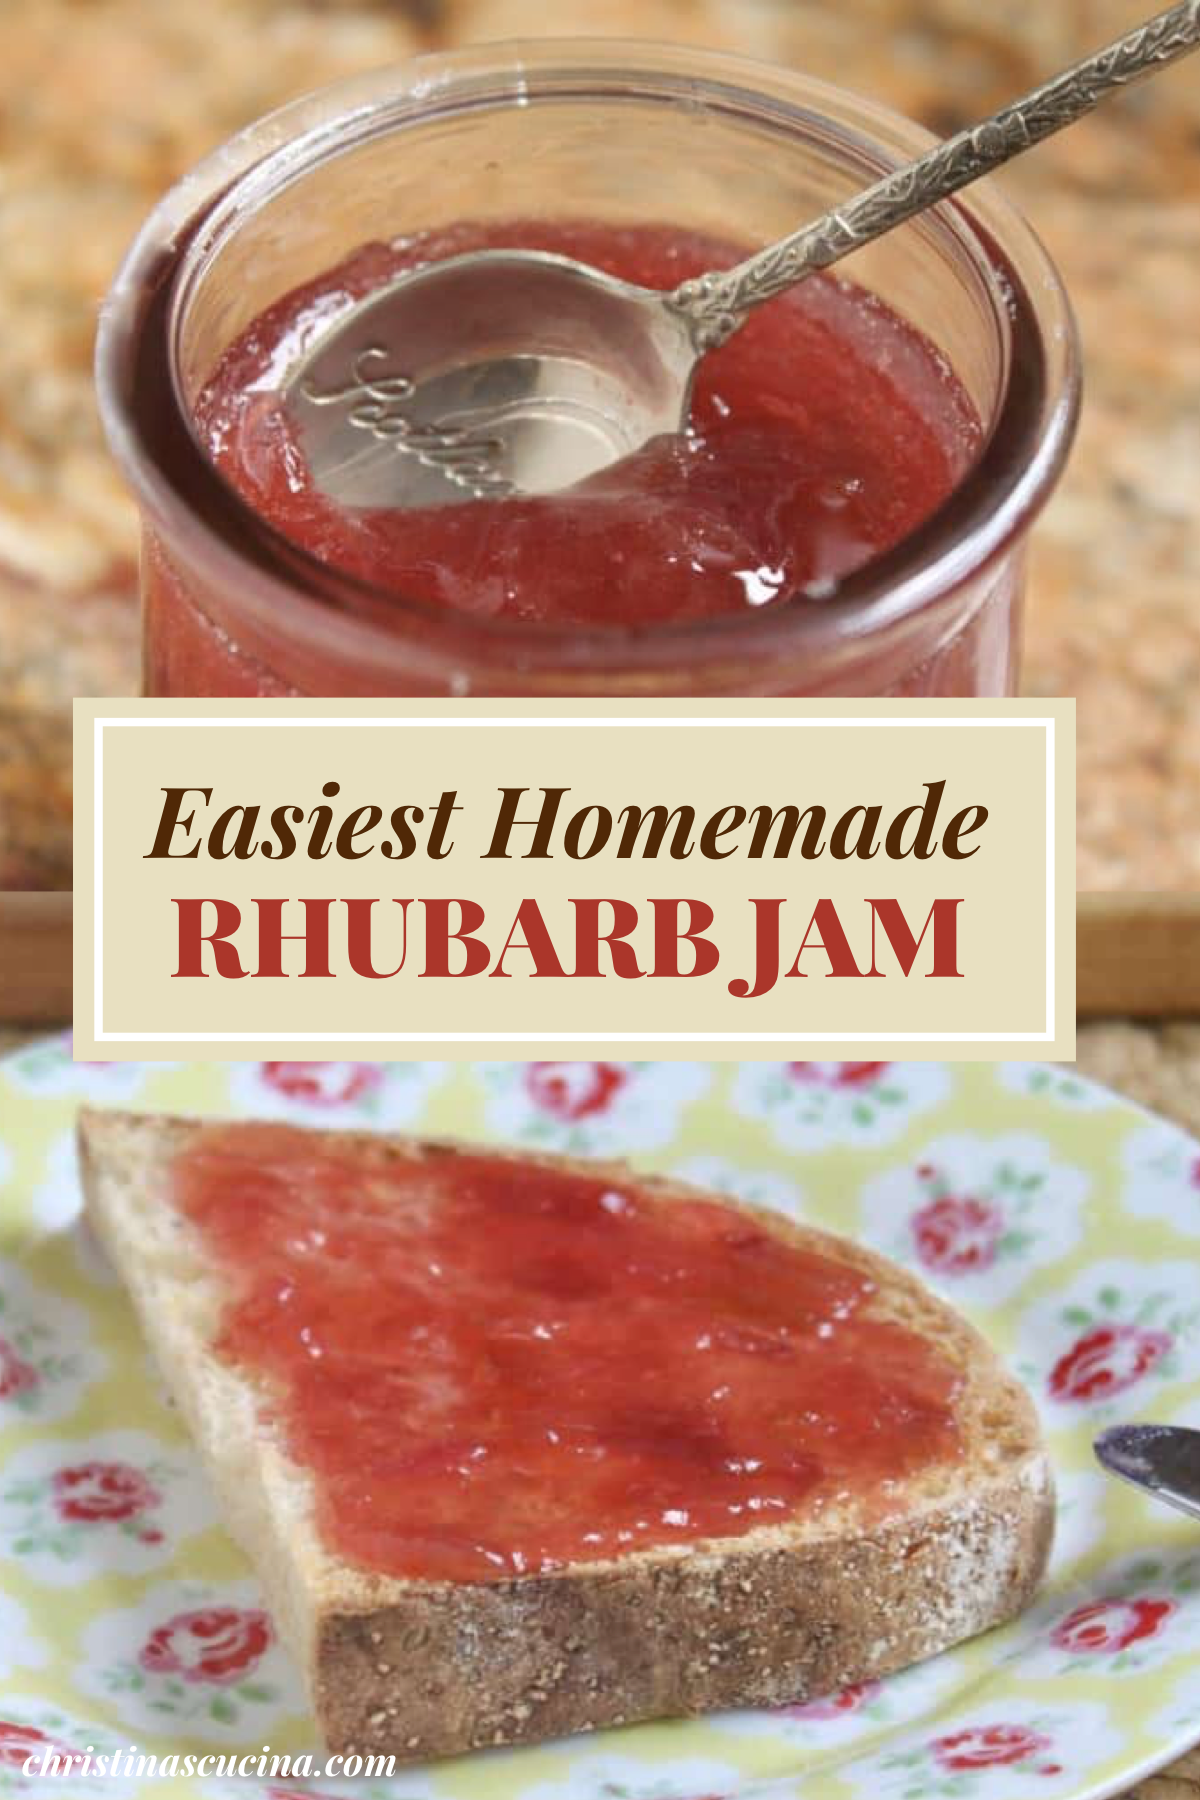 pinterest pin of rhubarb jam spread on piece of sliced bread on plate